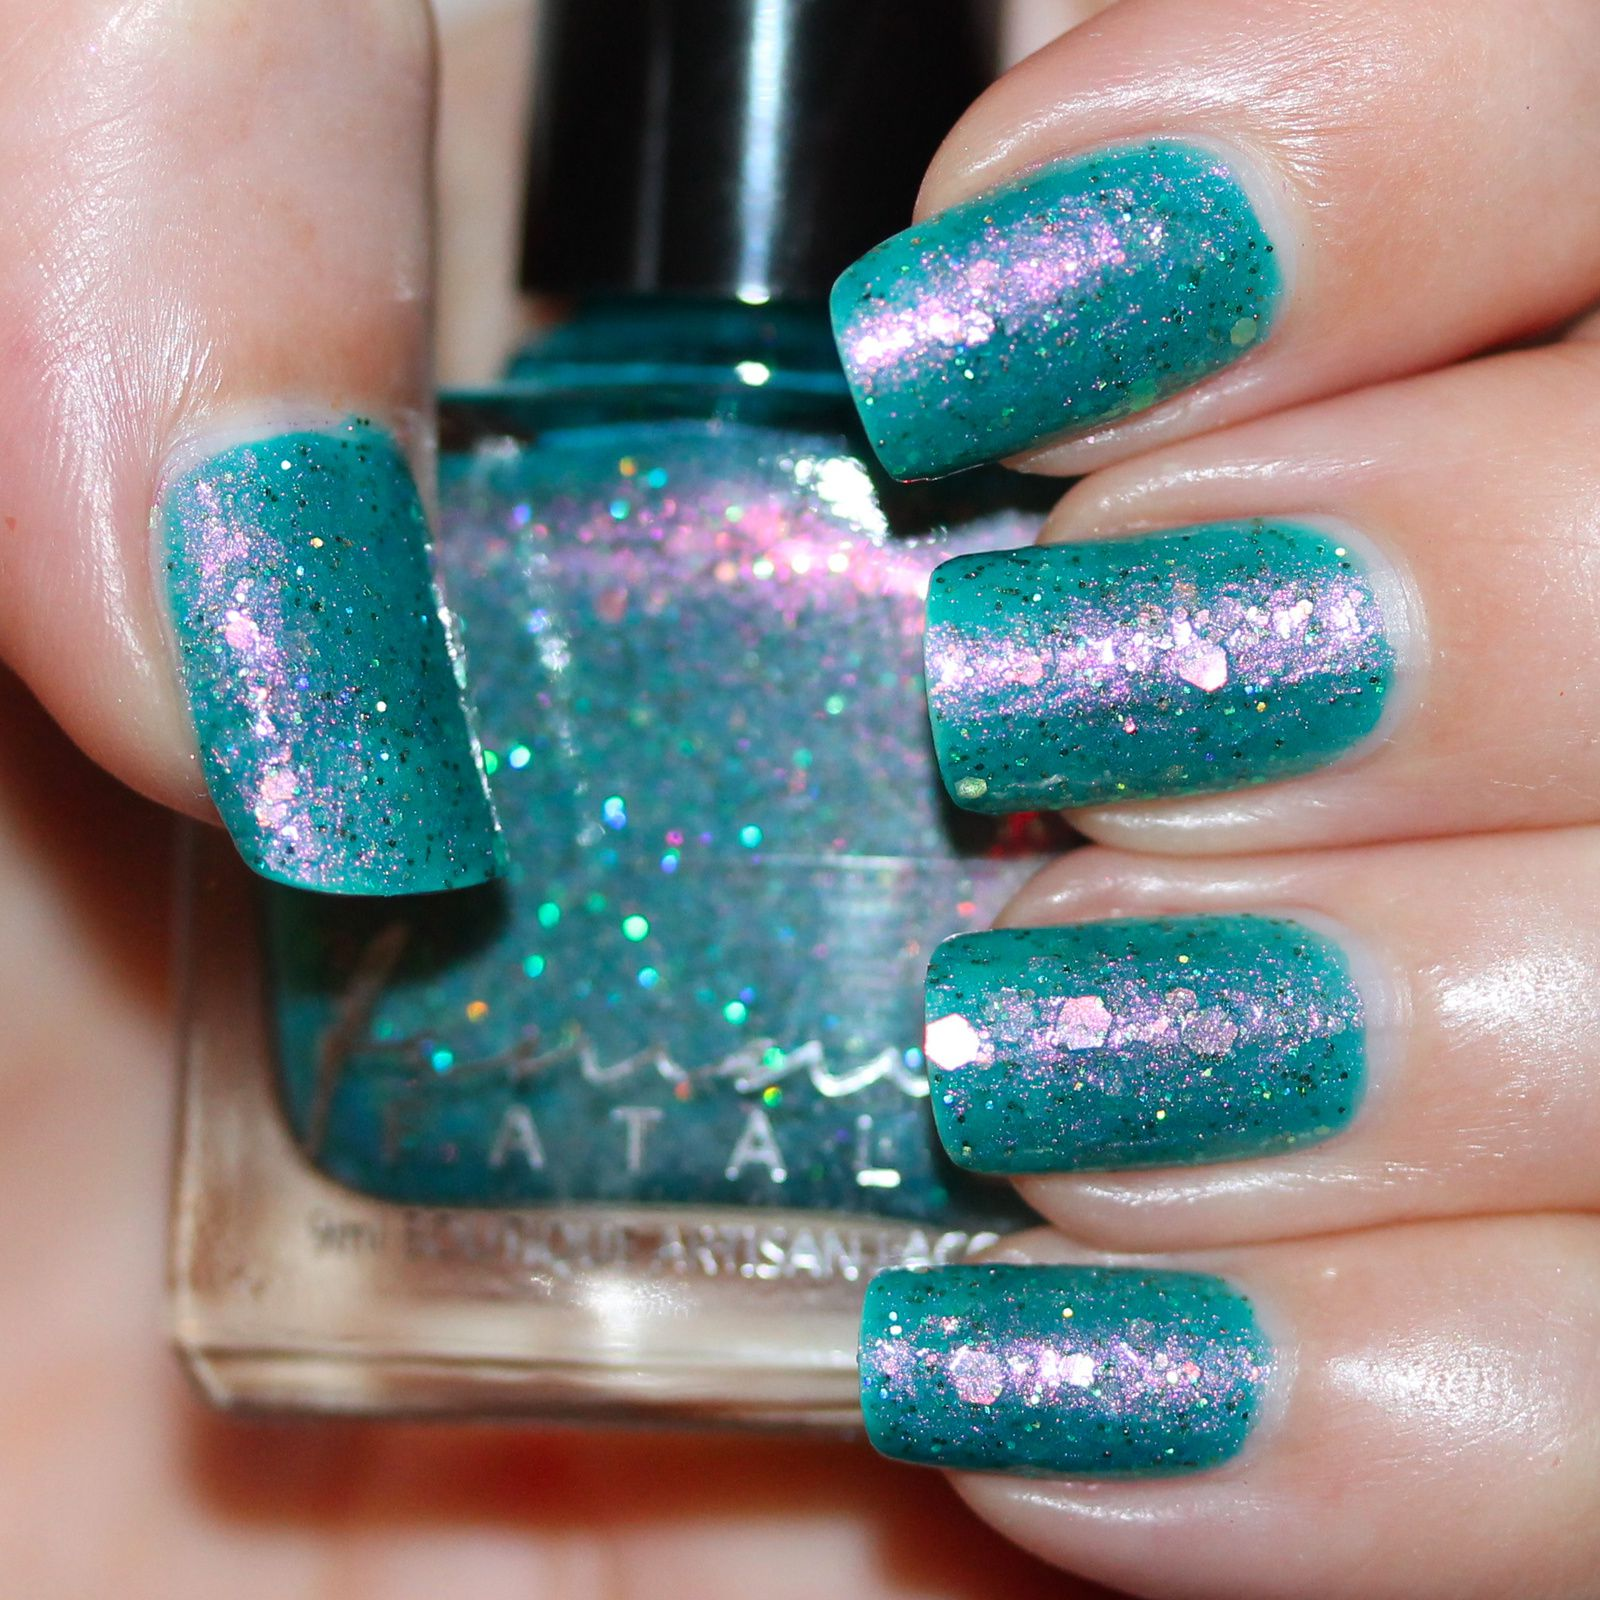 Femme Fatale Dominion of the Sea Witch (2 coats, no top coat)